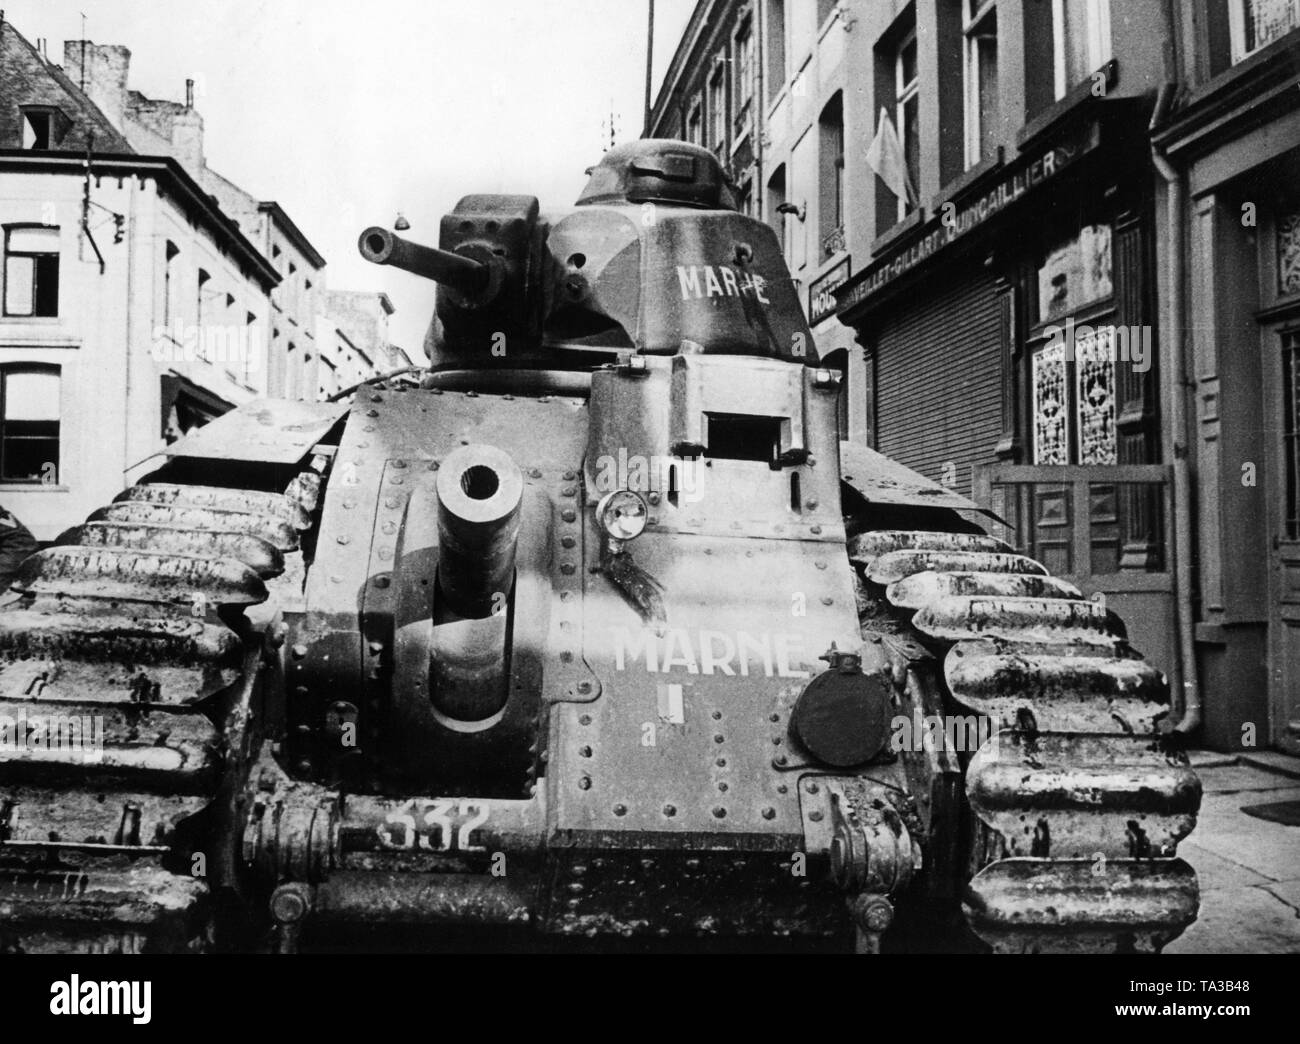 Renault Char B1 destroyed by a Stuka attack in a French village. Stock Photo